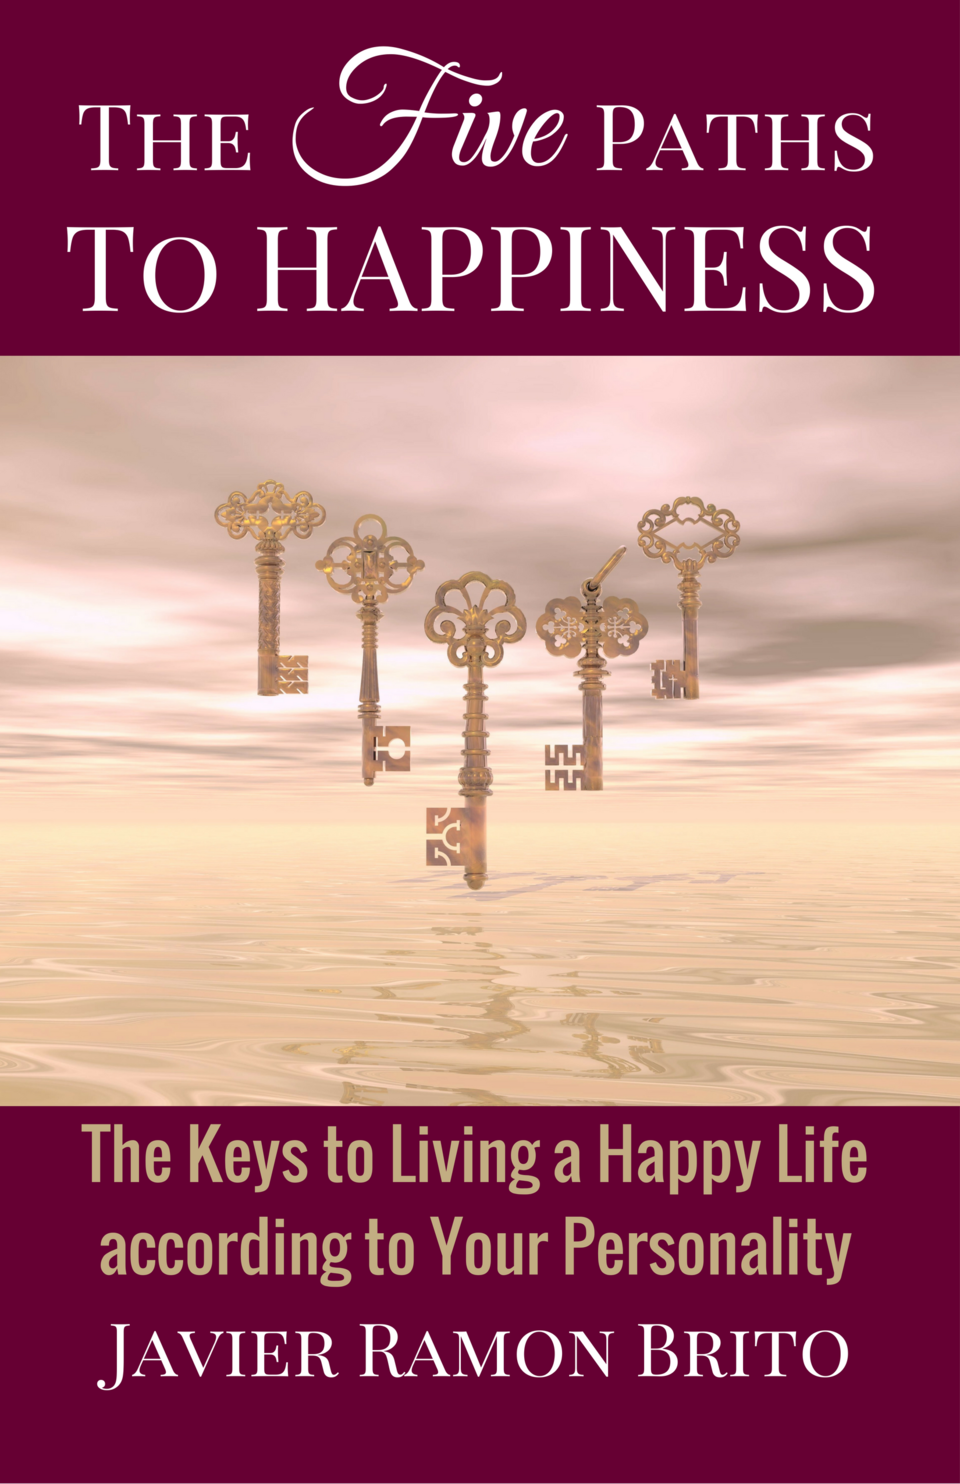 happiness, happy life, personality, book, e-book, self-help, personal-growth, the five paths to happiness